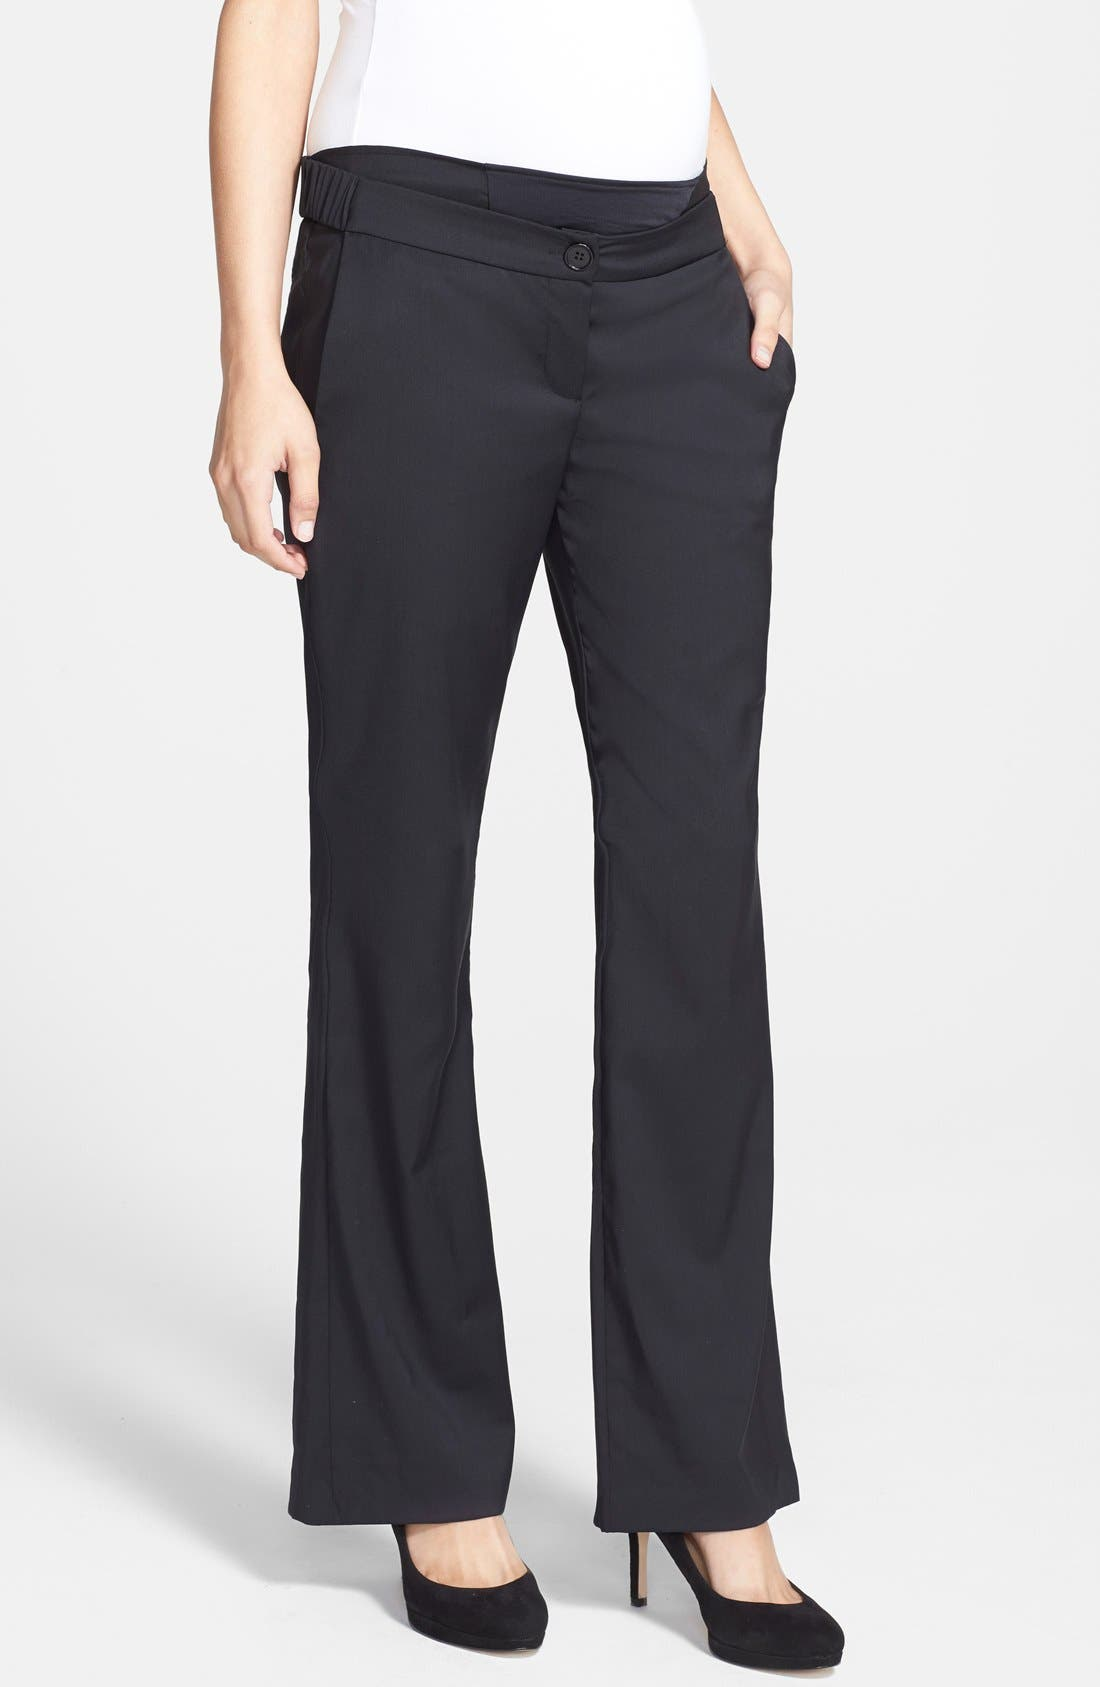 London 'Morgan' Tailored Maternity Pants,                         Main,                         color, 001